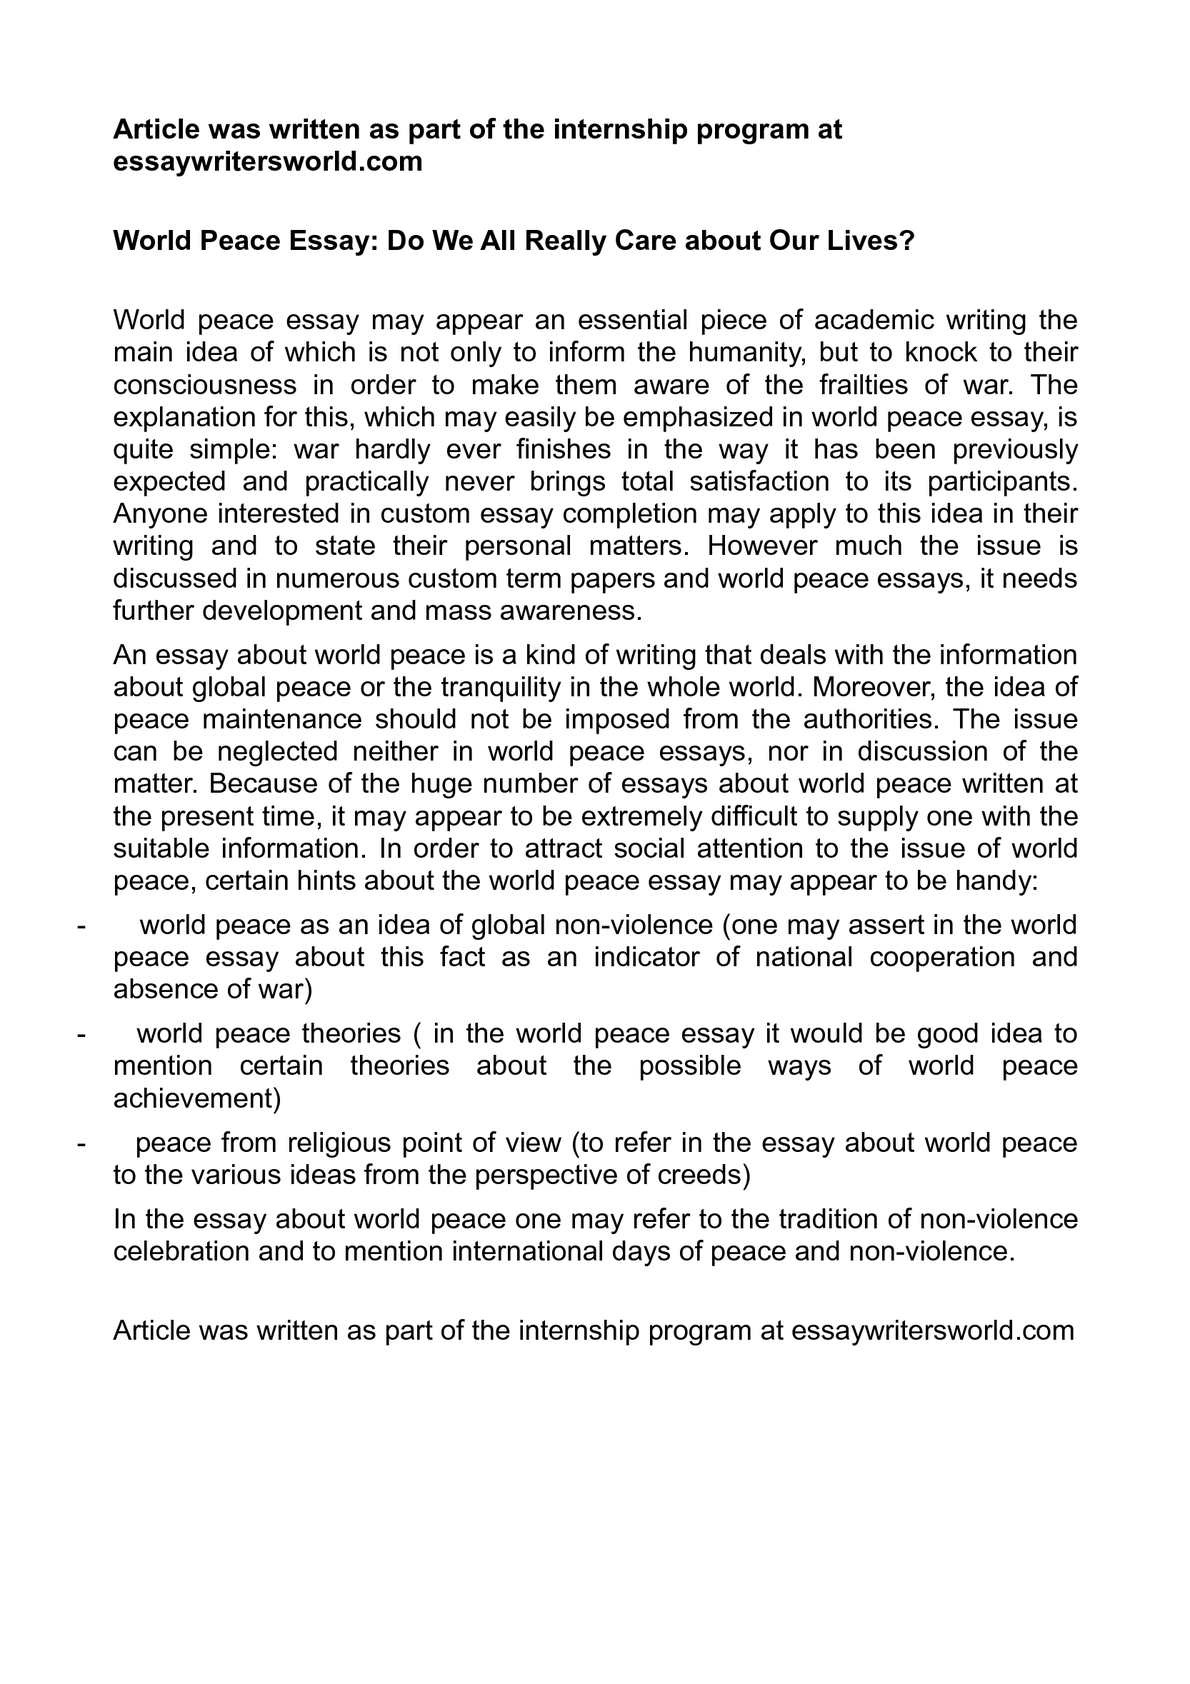 Essay on World peace